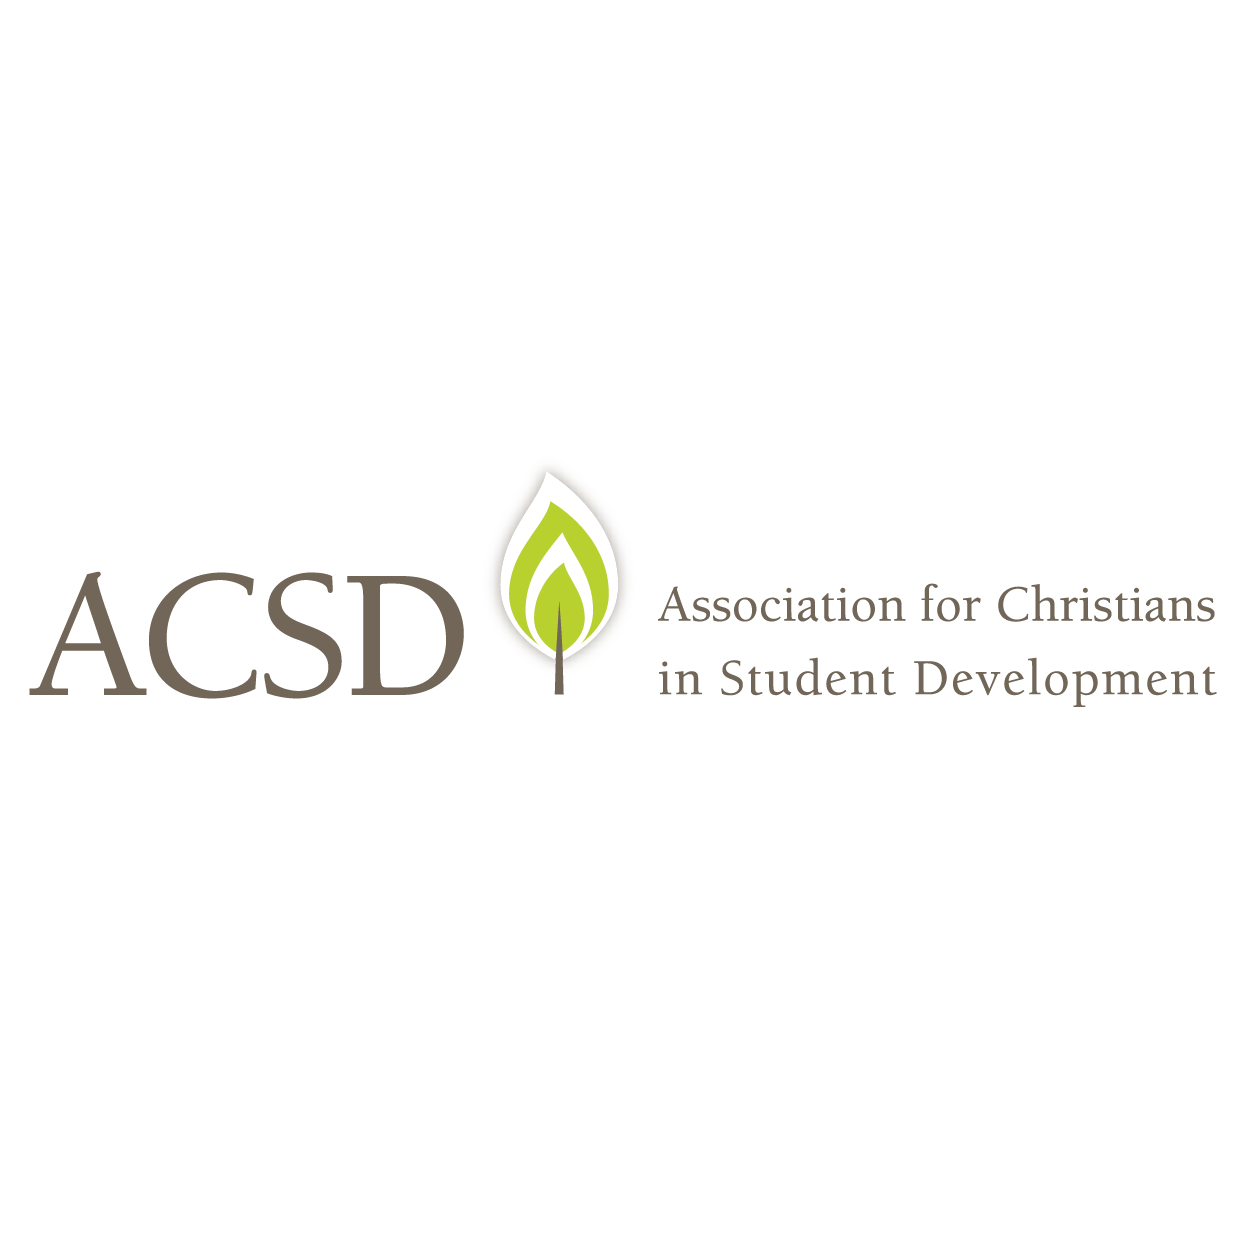 Association for Christians in Student Development logo